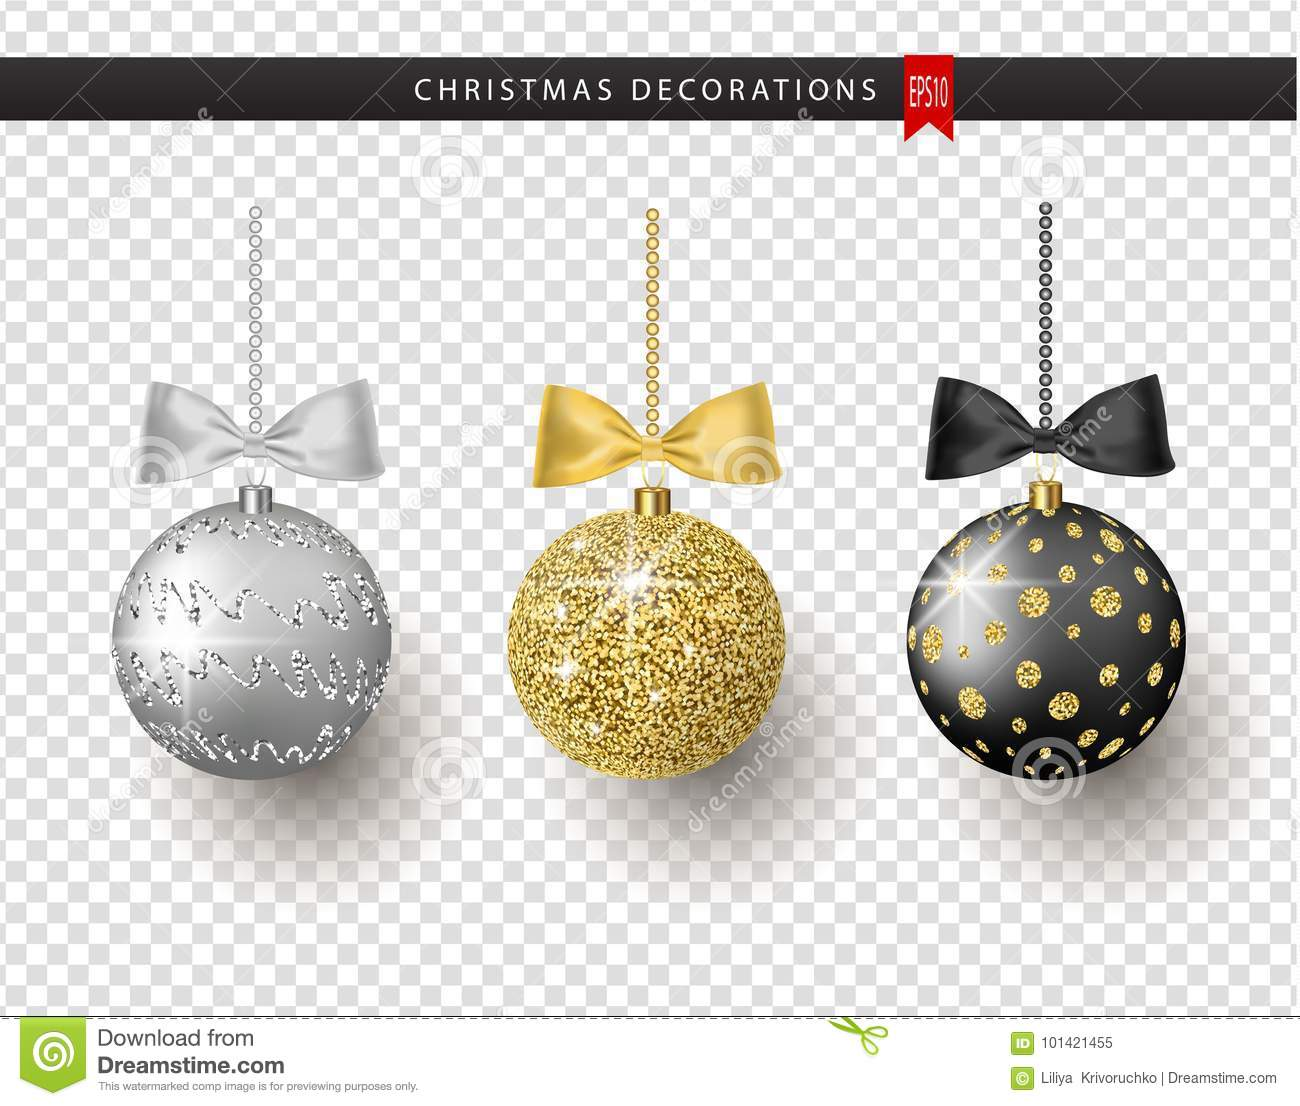 Collection of realistic beautiful shiny Christmas balls with bow on transparent background. New Year decoration